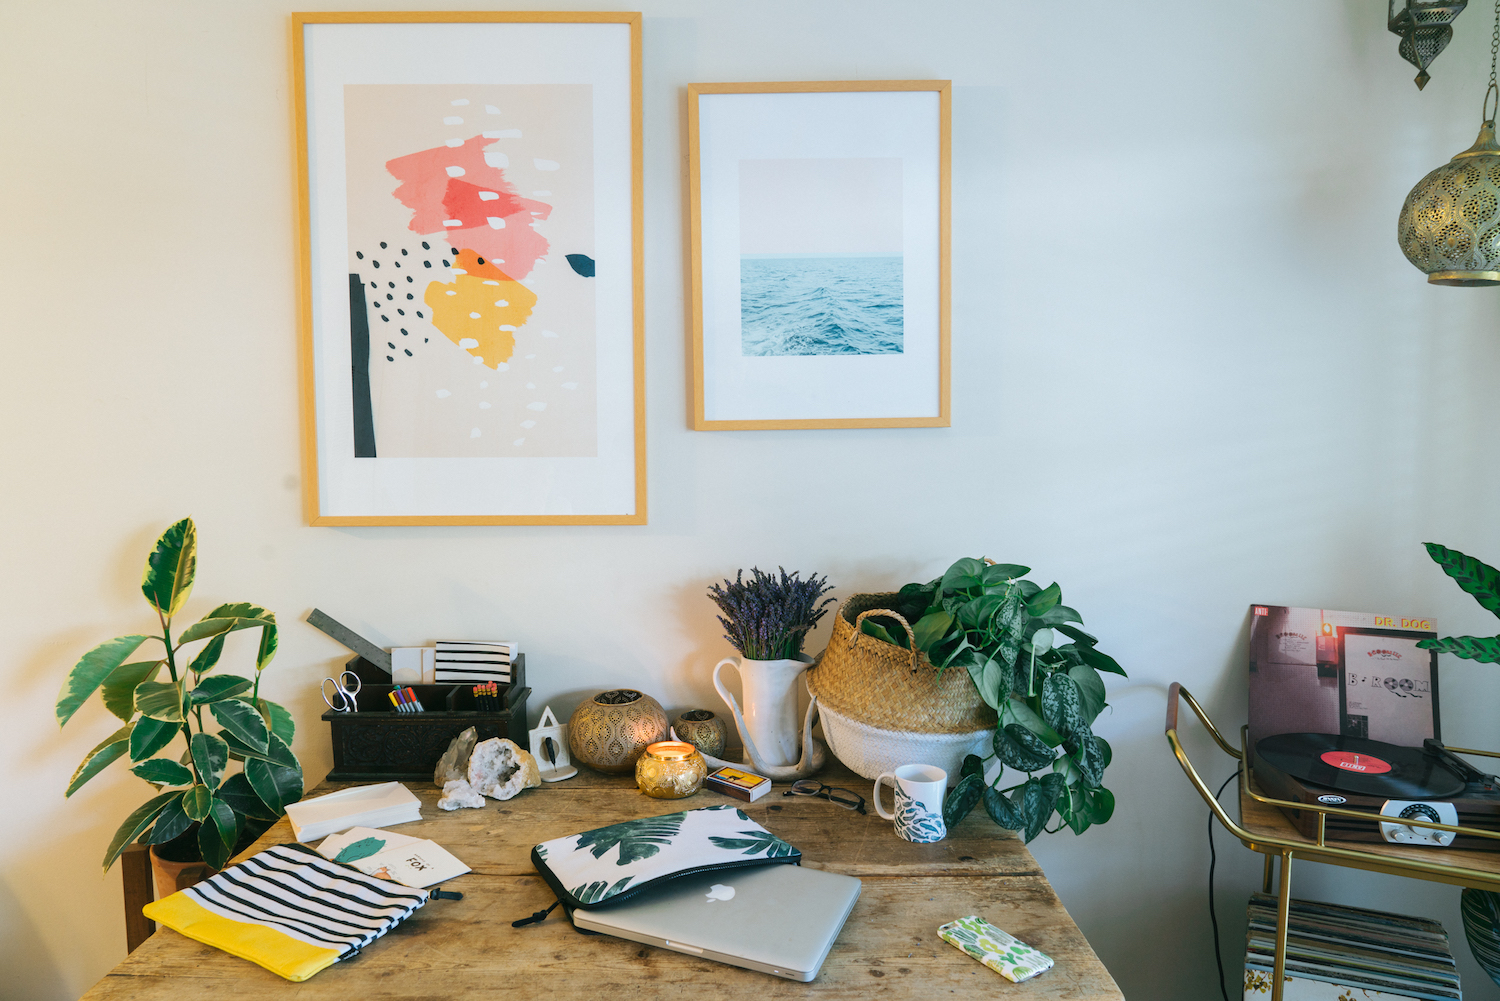 Floral Designer Annie Armstrong Of Best Day Ever Is Here To Give You 5 Easy  Tips For Refreshing Your Desk That Are Guaranteed To Brighten Your Day And  ...